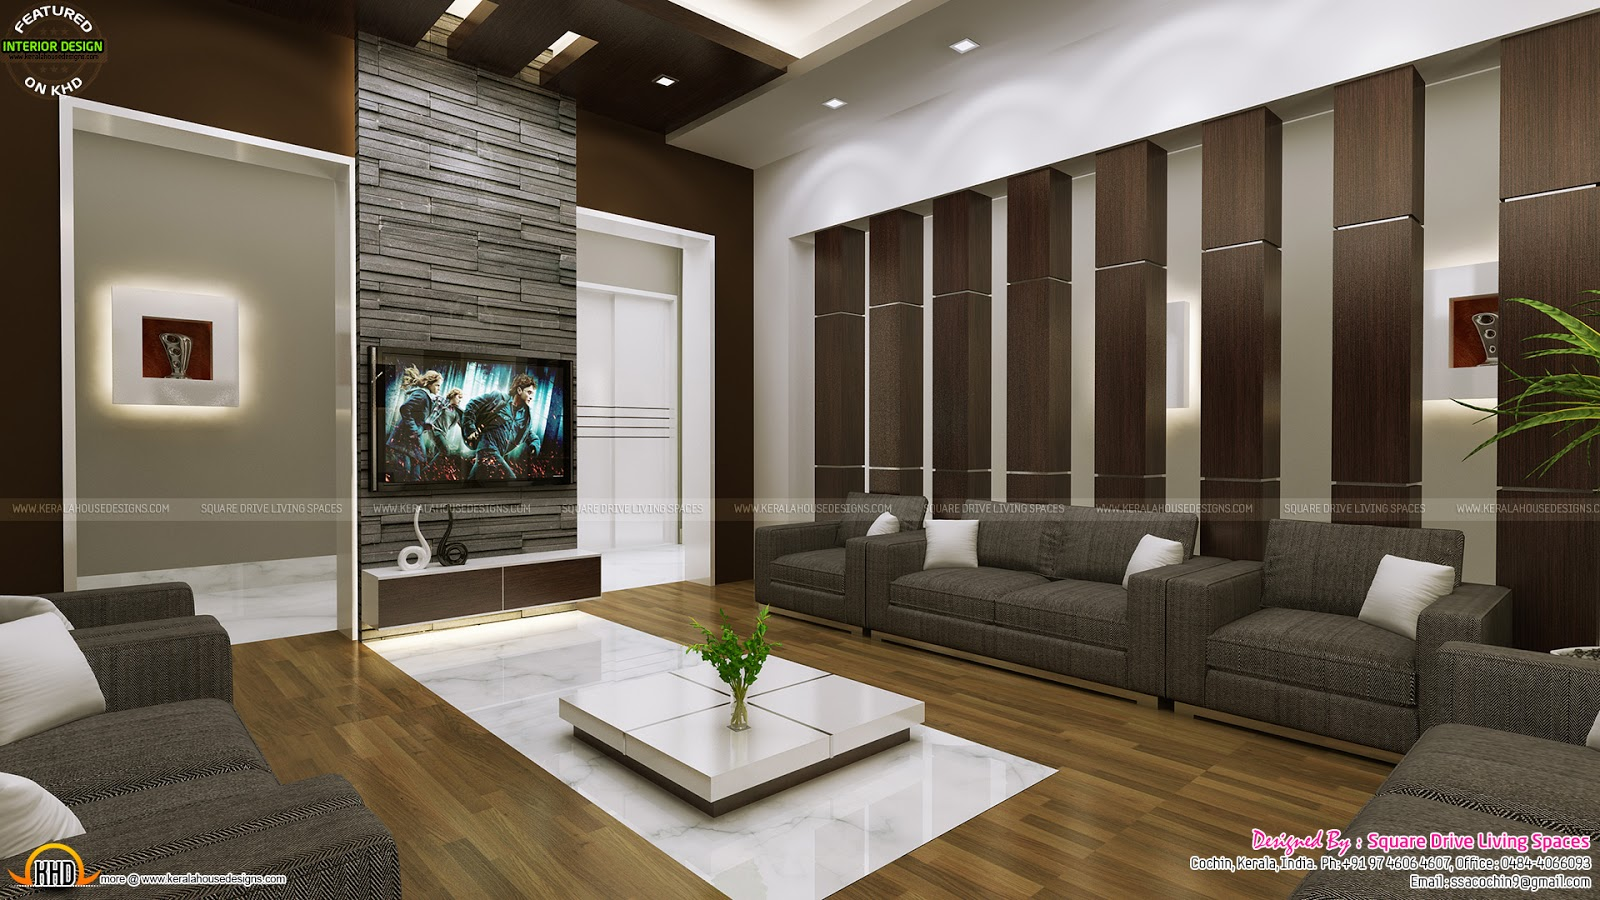 Attractive home interior ideas kerala home design and for Interior design for living room chennai